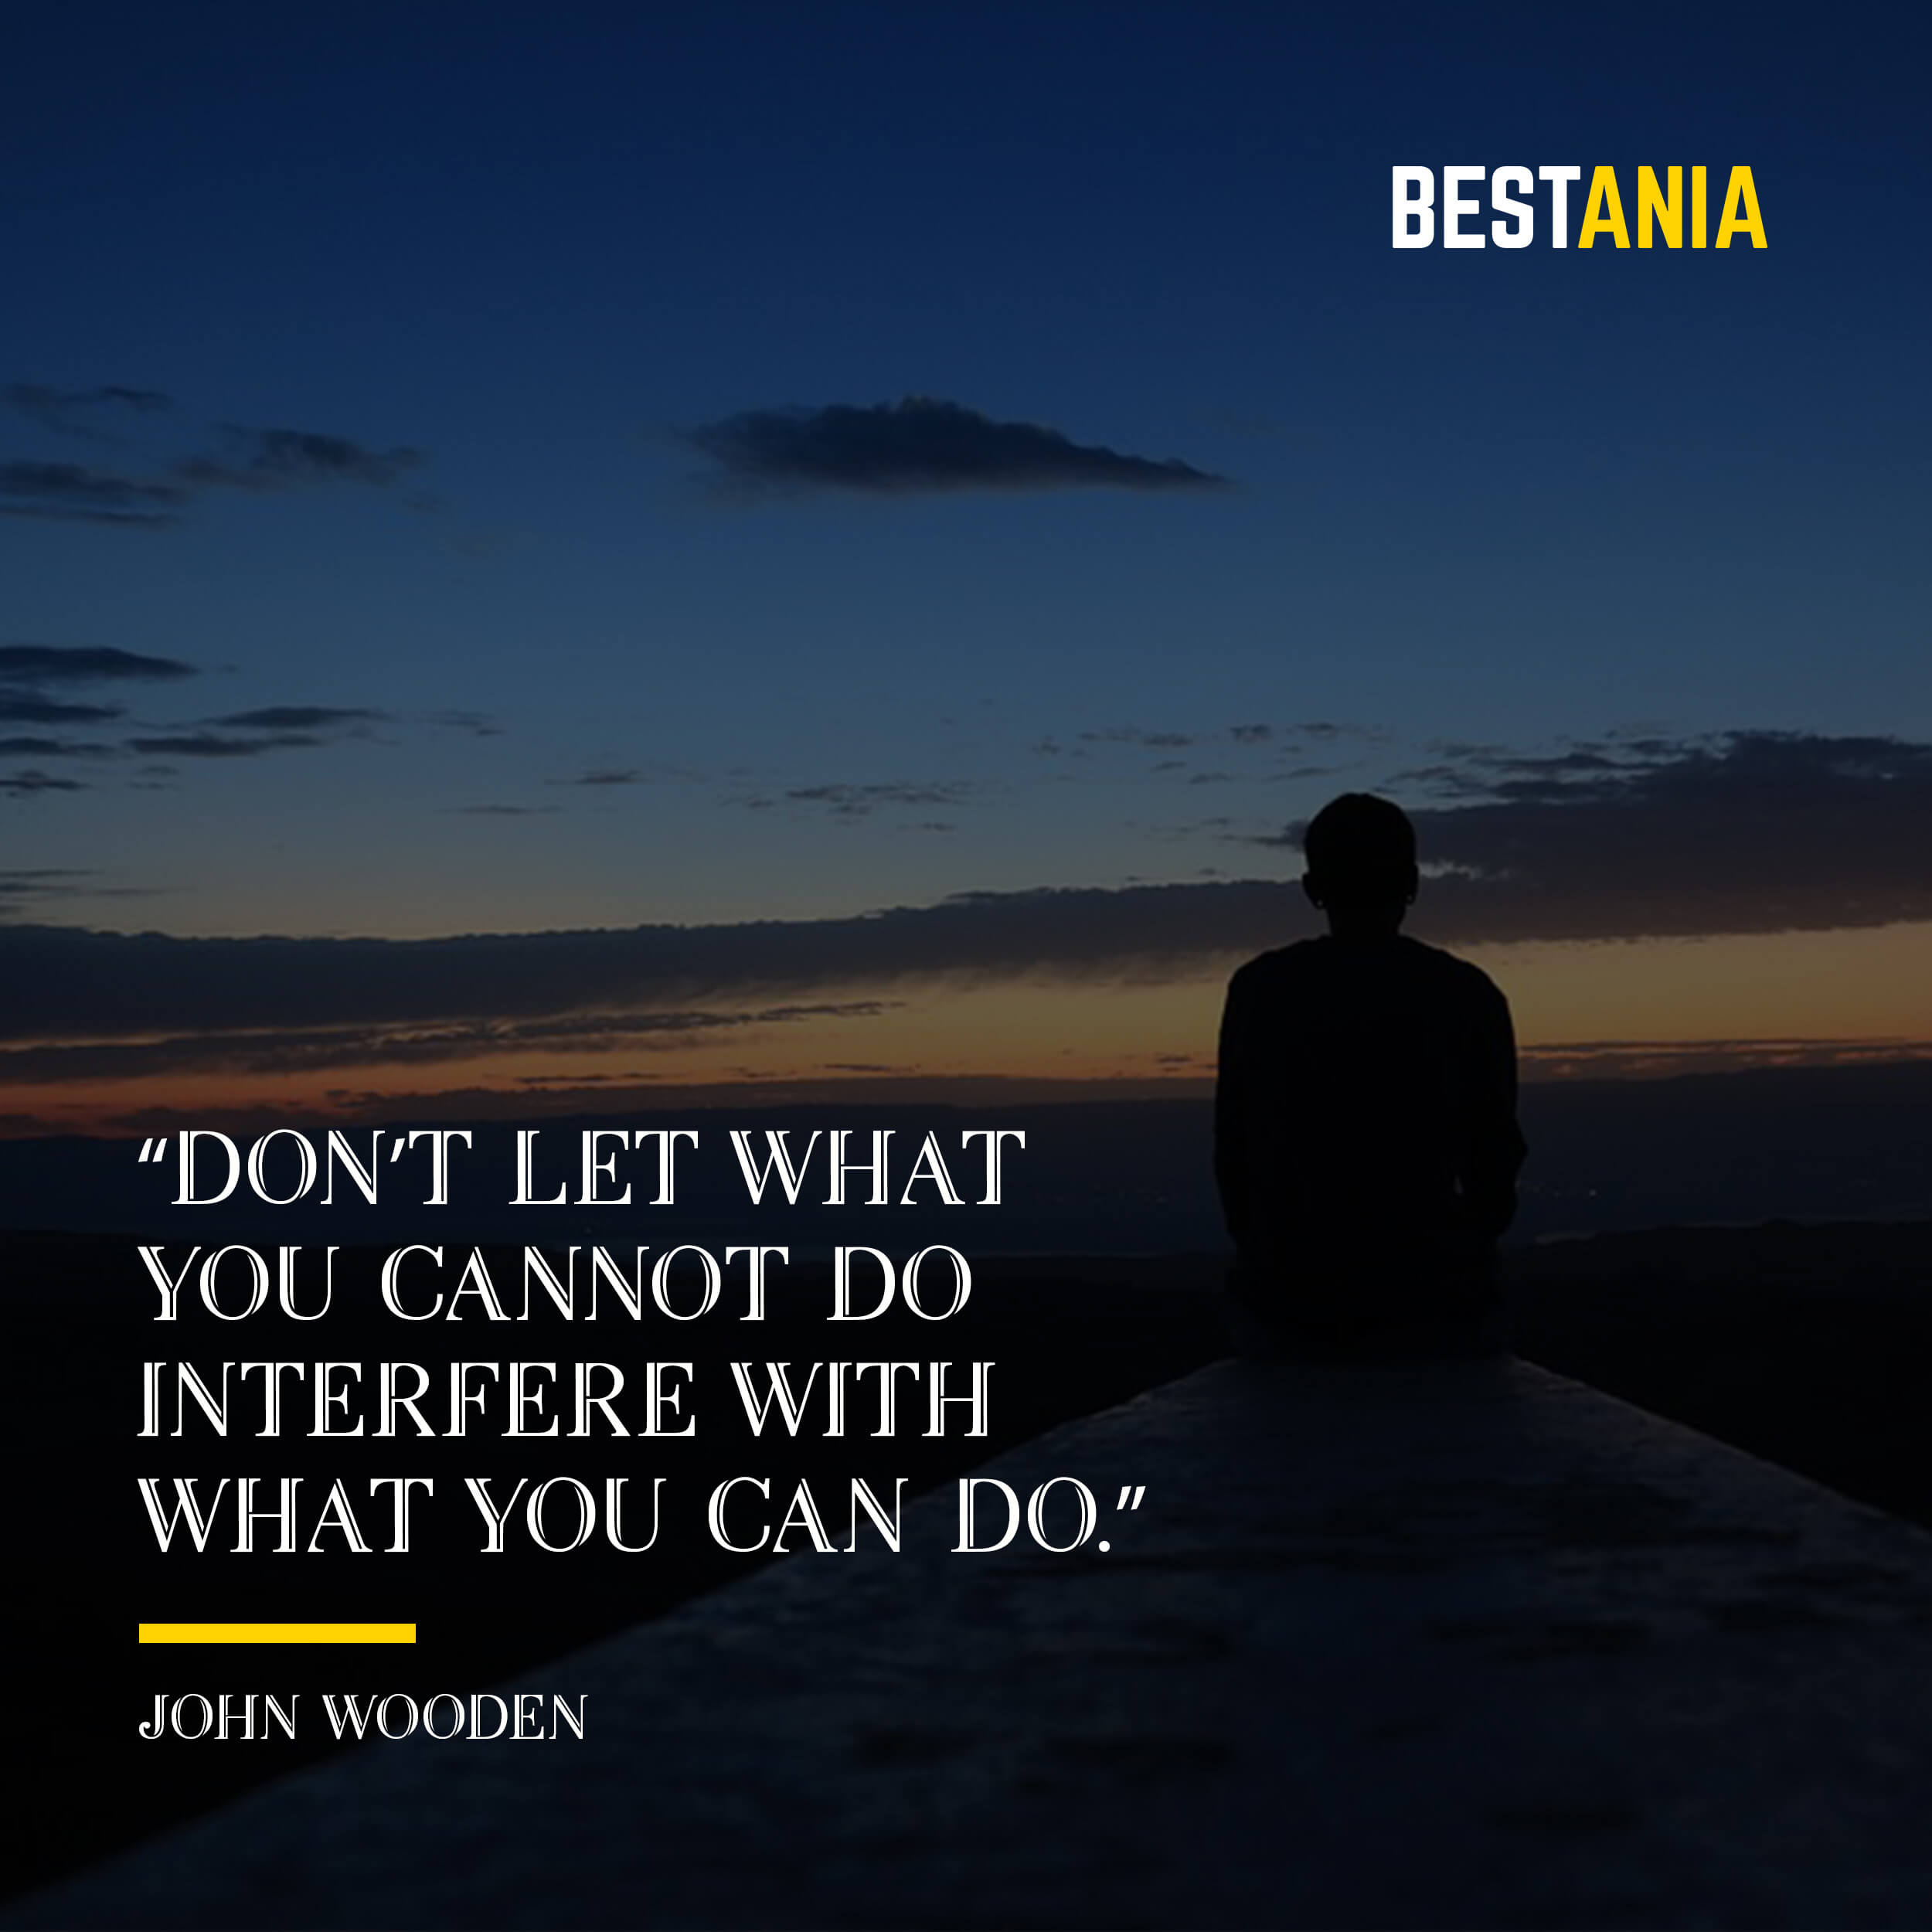 """Don't let what you cannot do interfere with what you can do."" – John Wooden"